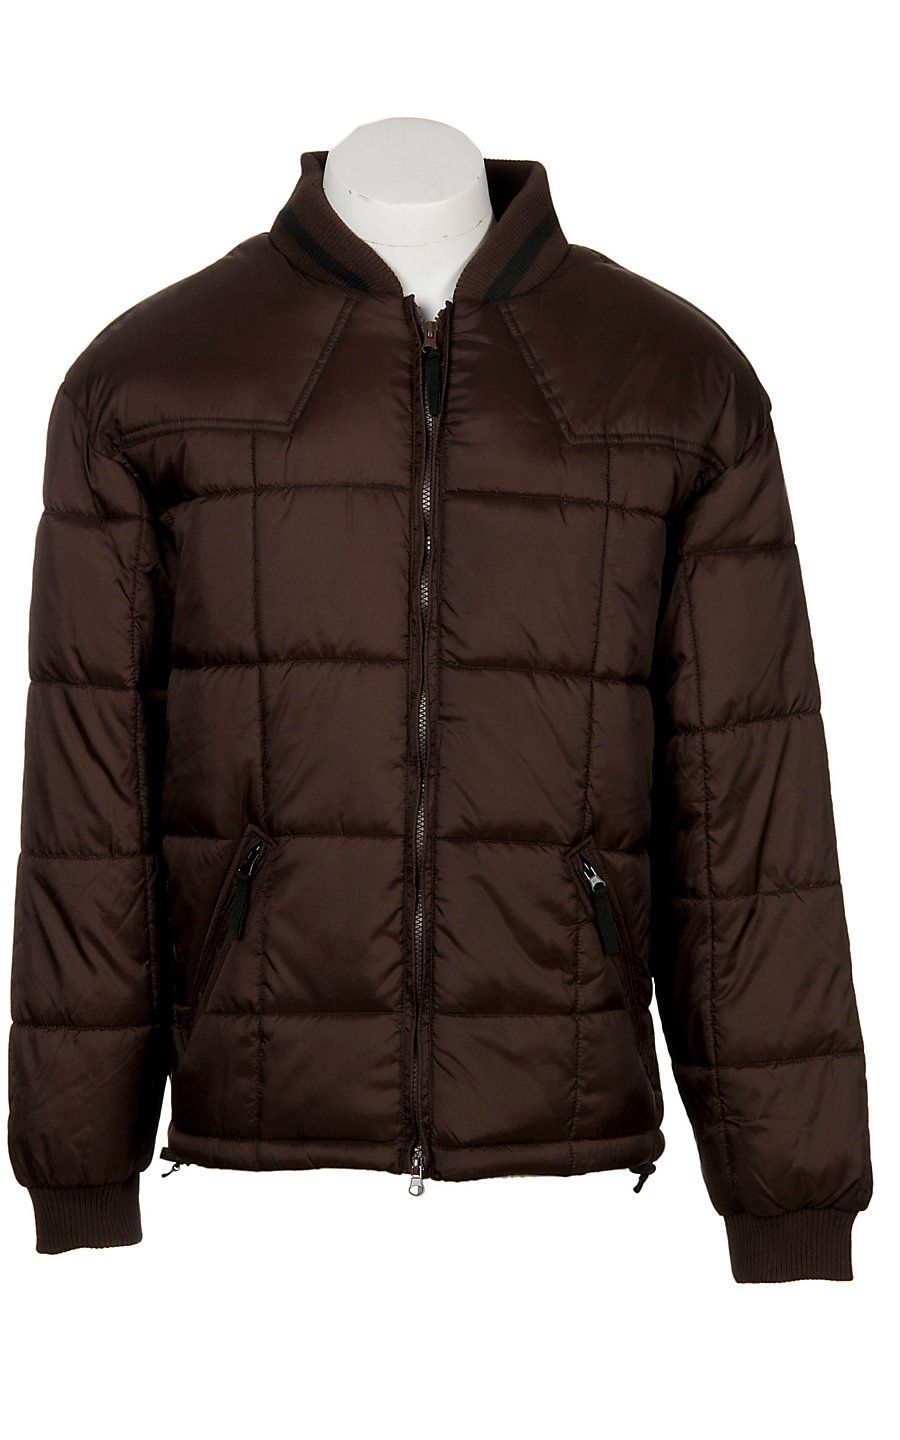 Rafter C Ranchwear Mens Chocolate Brown Polyfill Quilted Jacket Western Jacket Mens Coats Mens Workwear [ 1440 x 900 Pixel ]